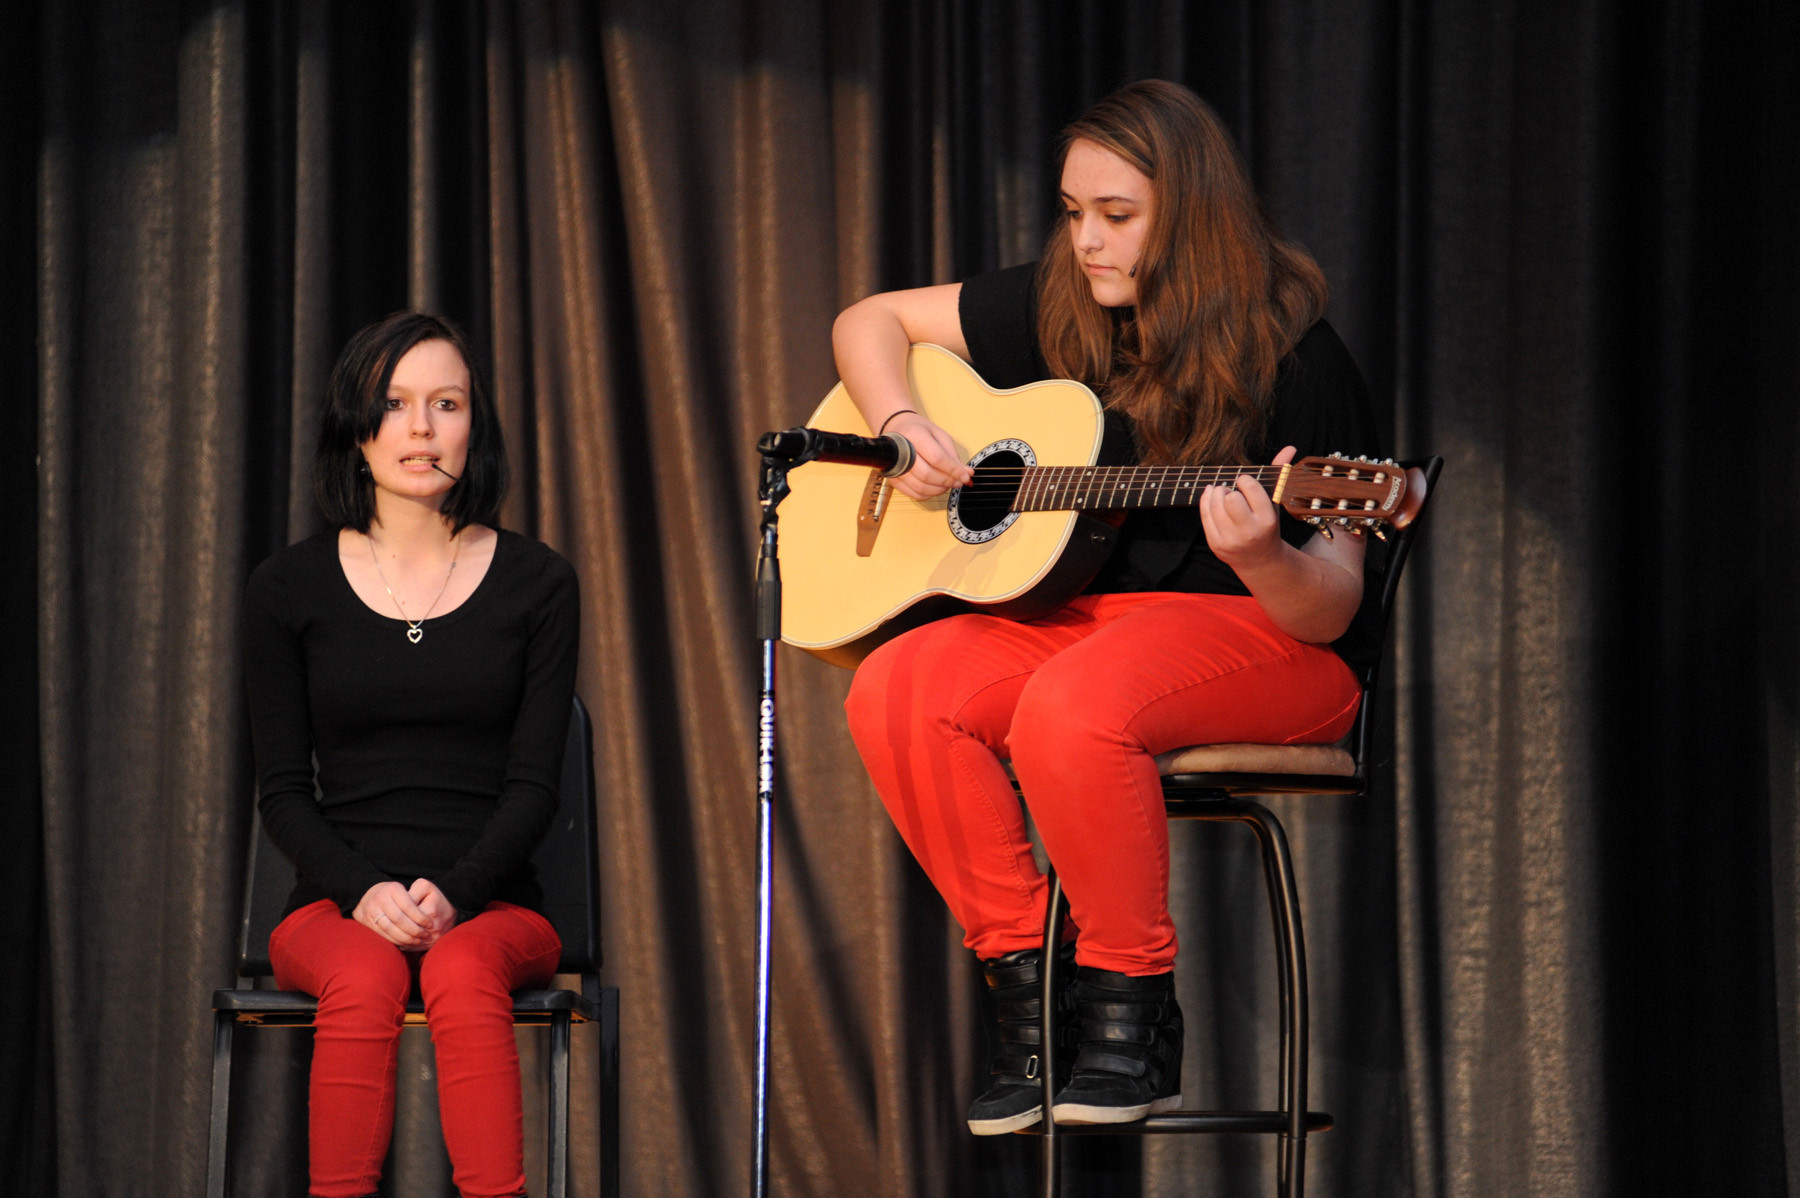 Carmela Cipriano performed with her Wellington C. Mepham High School classmate Anna Nicchia at this year's talent show on April 11.